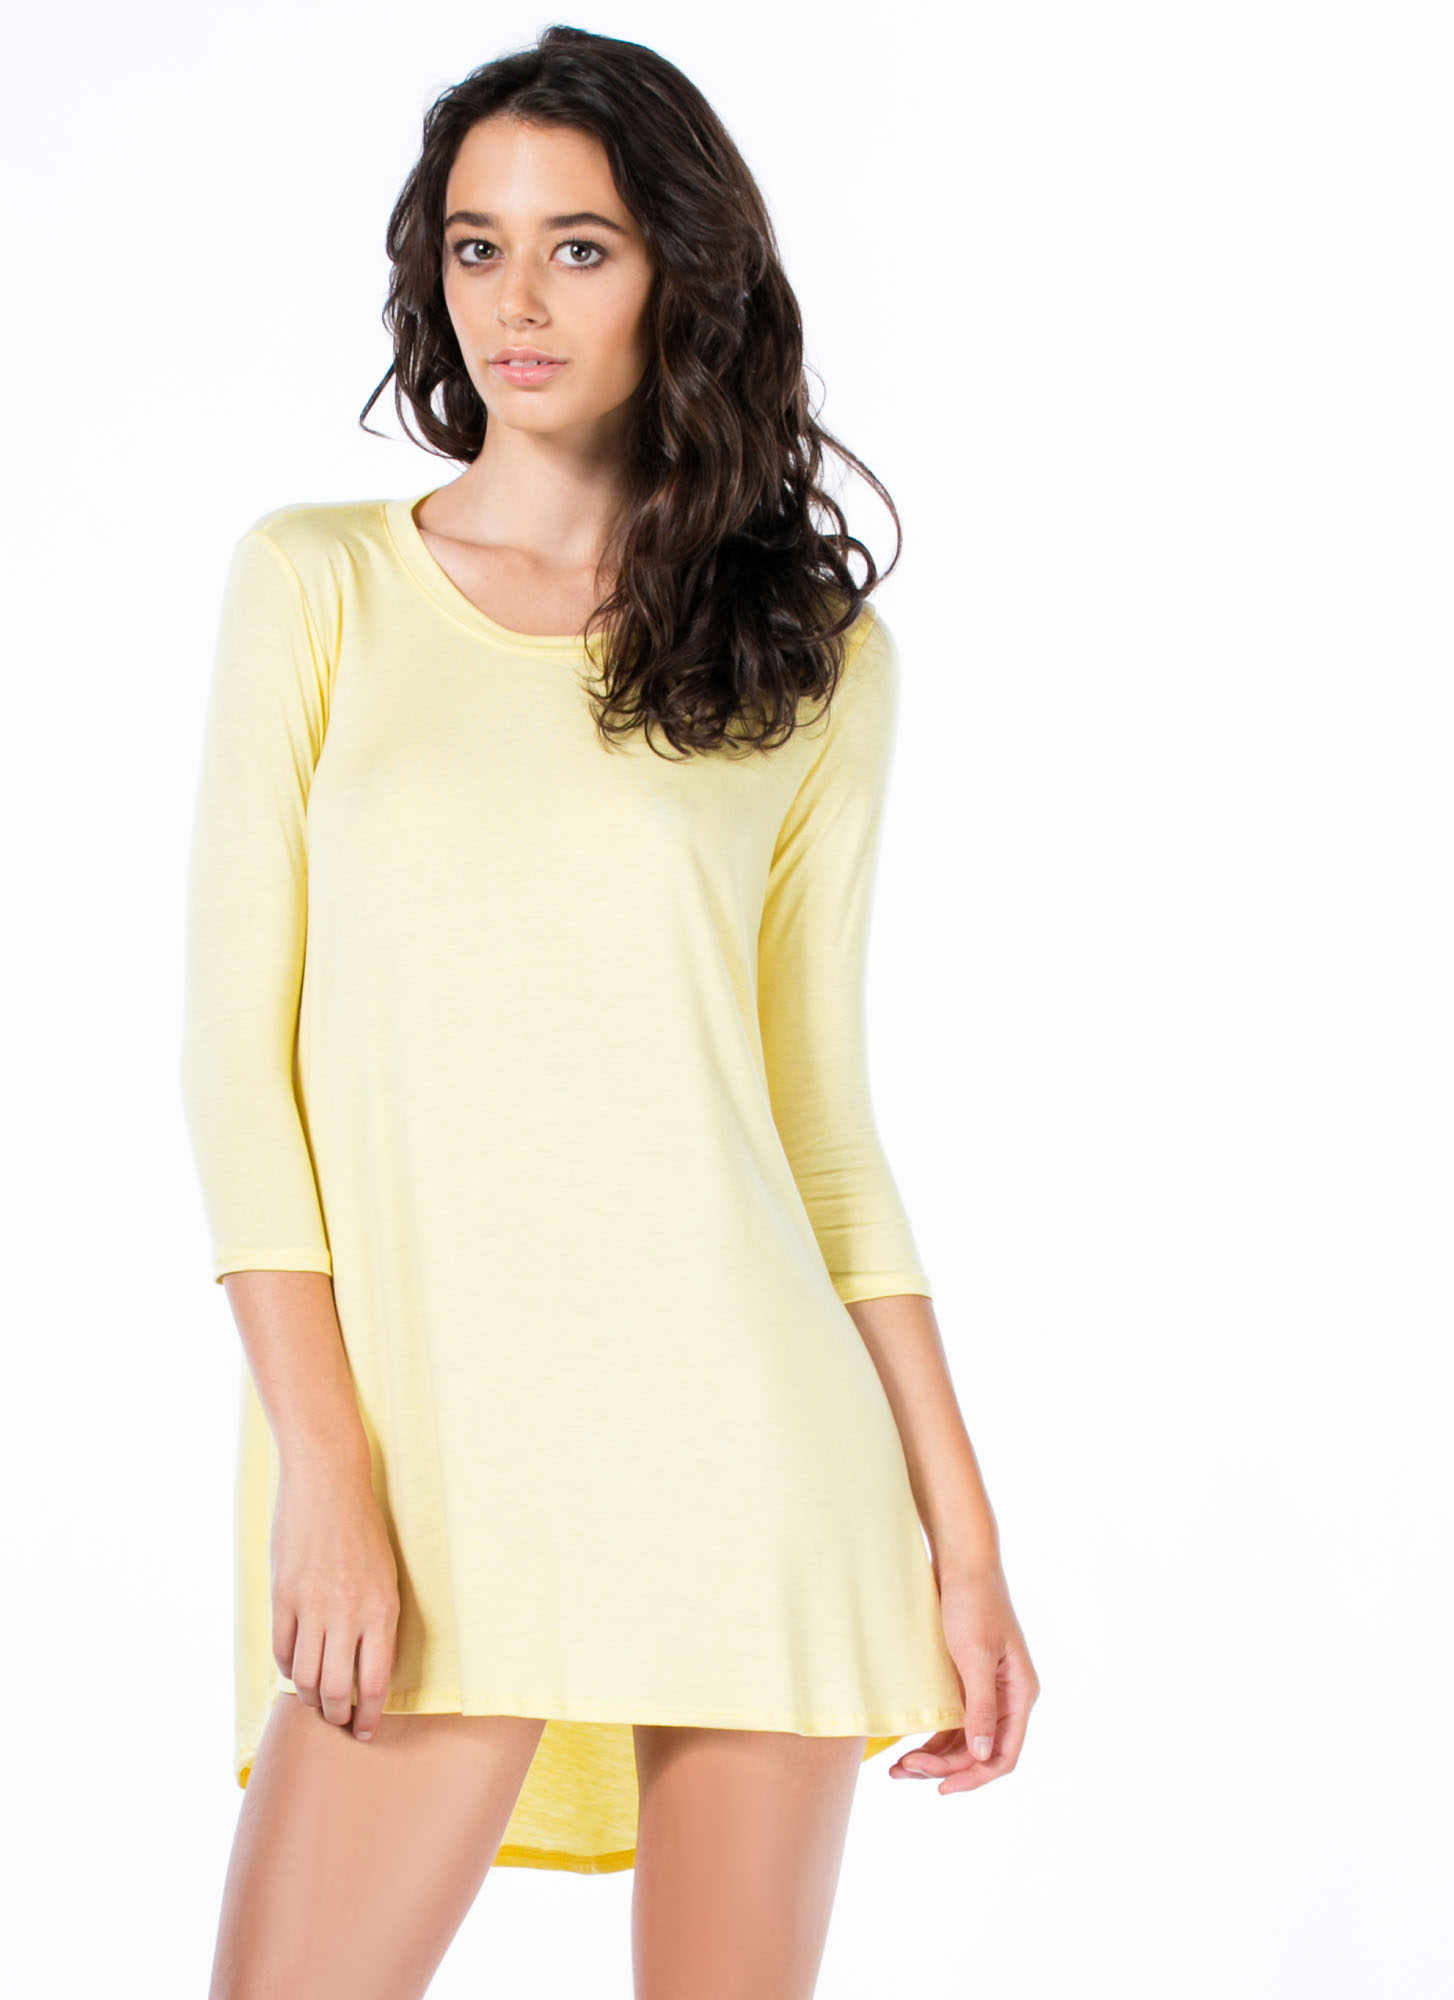 To The Tee Shirt Tunic Dress YELLOW